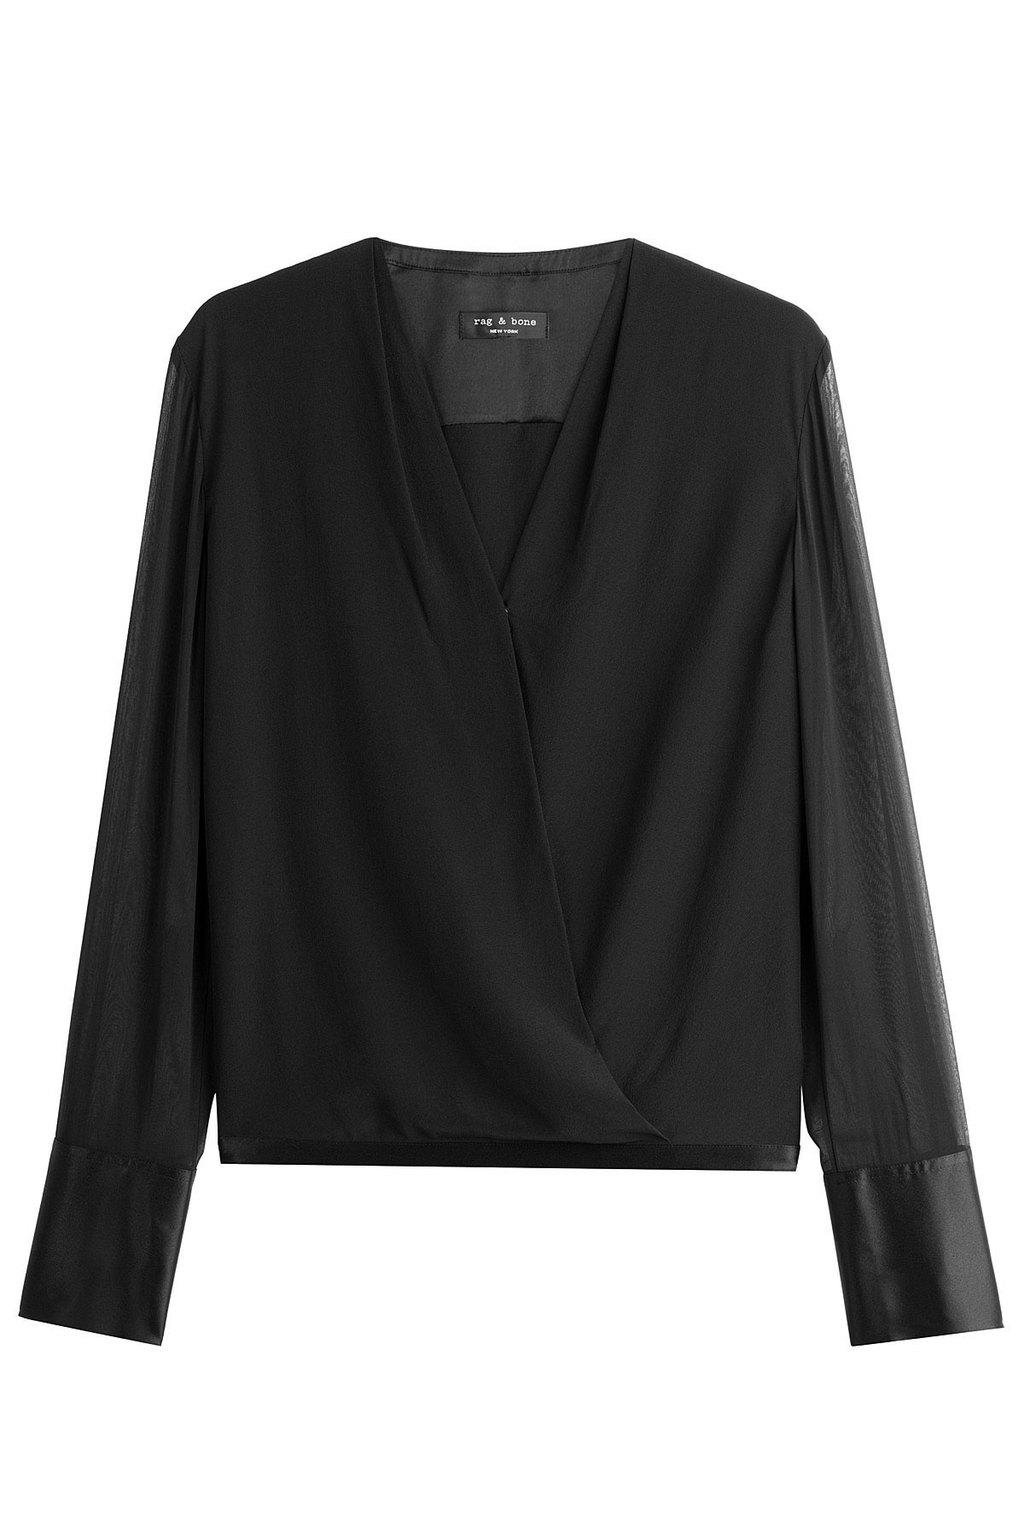 Draped Silk Blouse - neckline: v-neck; pattern: plain; style: blouse; bust detail: subtle bust detail; predominant colour: black; occasions: work; length: standard; fibres: silk - 100%; fit: loose; sleeve length: long sleeve; sleeve style: standard; texture group: silky - light; pattern type: fabric; wardrobe: basic; season: a/w 2016